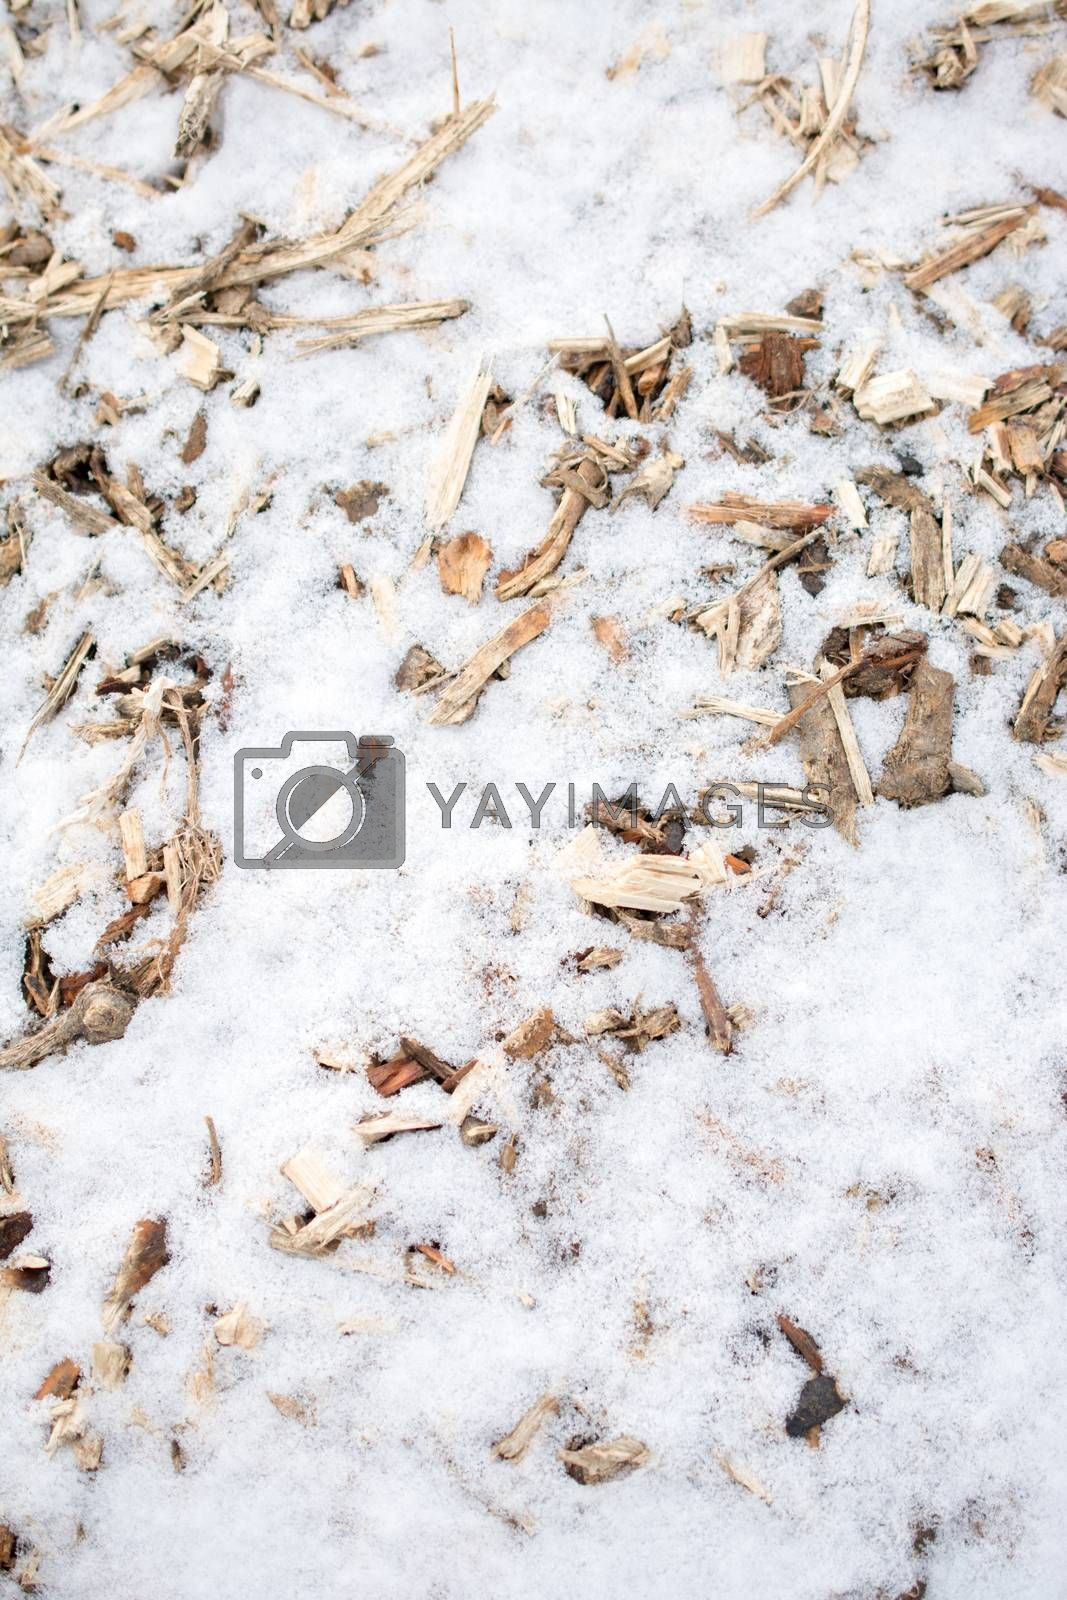 Wood pieces on white snow in winter by berkay